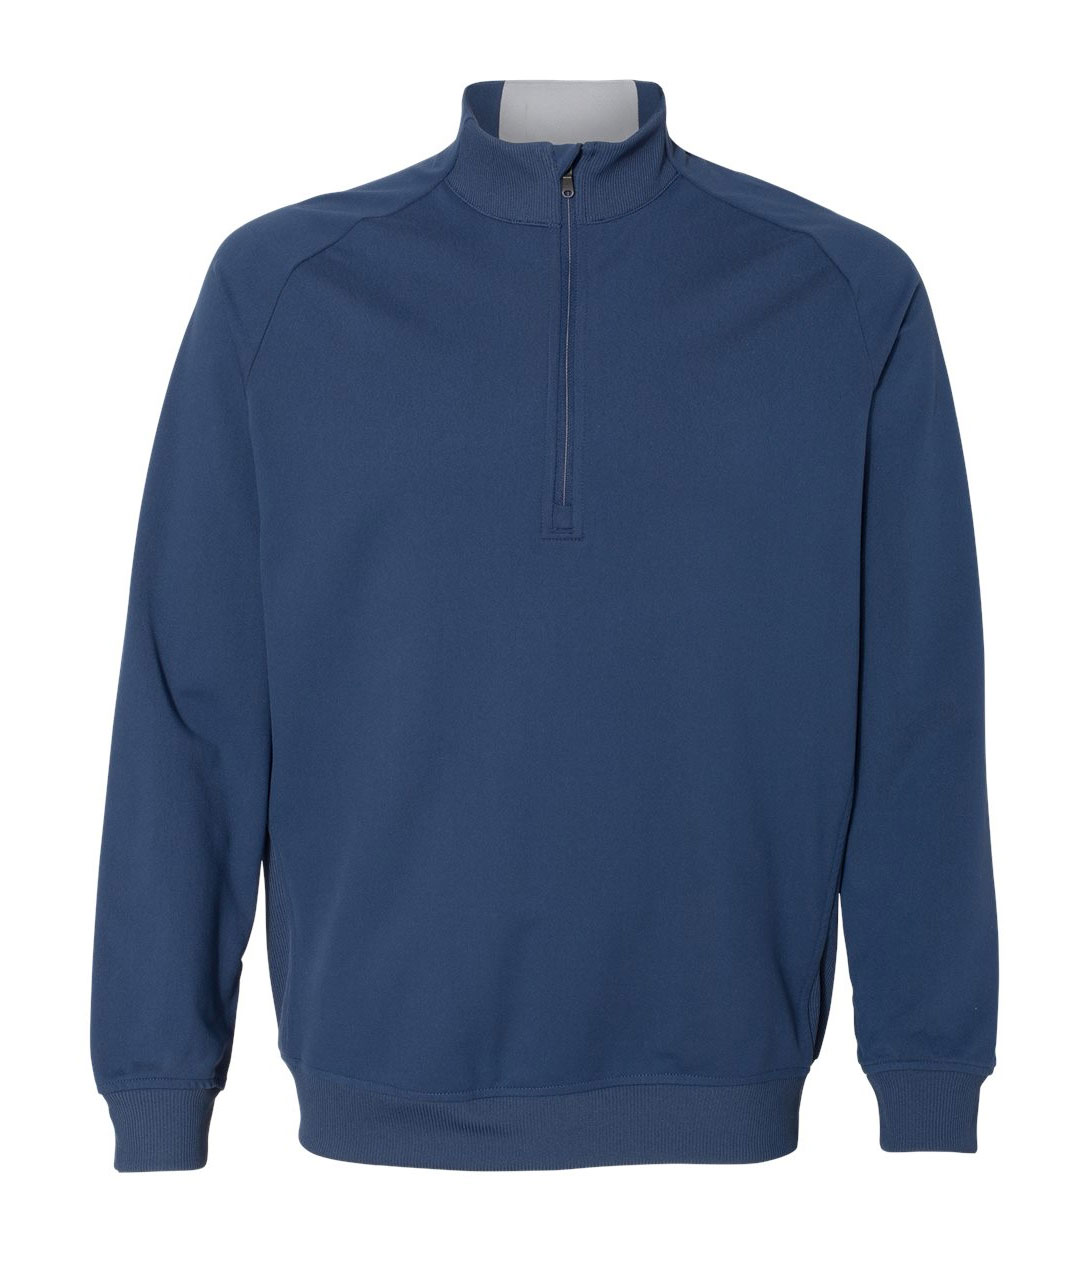 Adidas Mens Quarter Zip Club Pullover